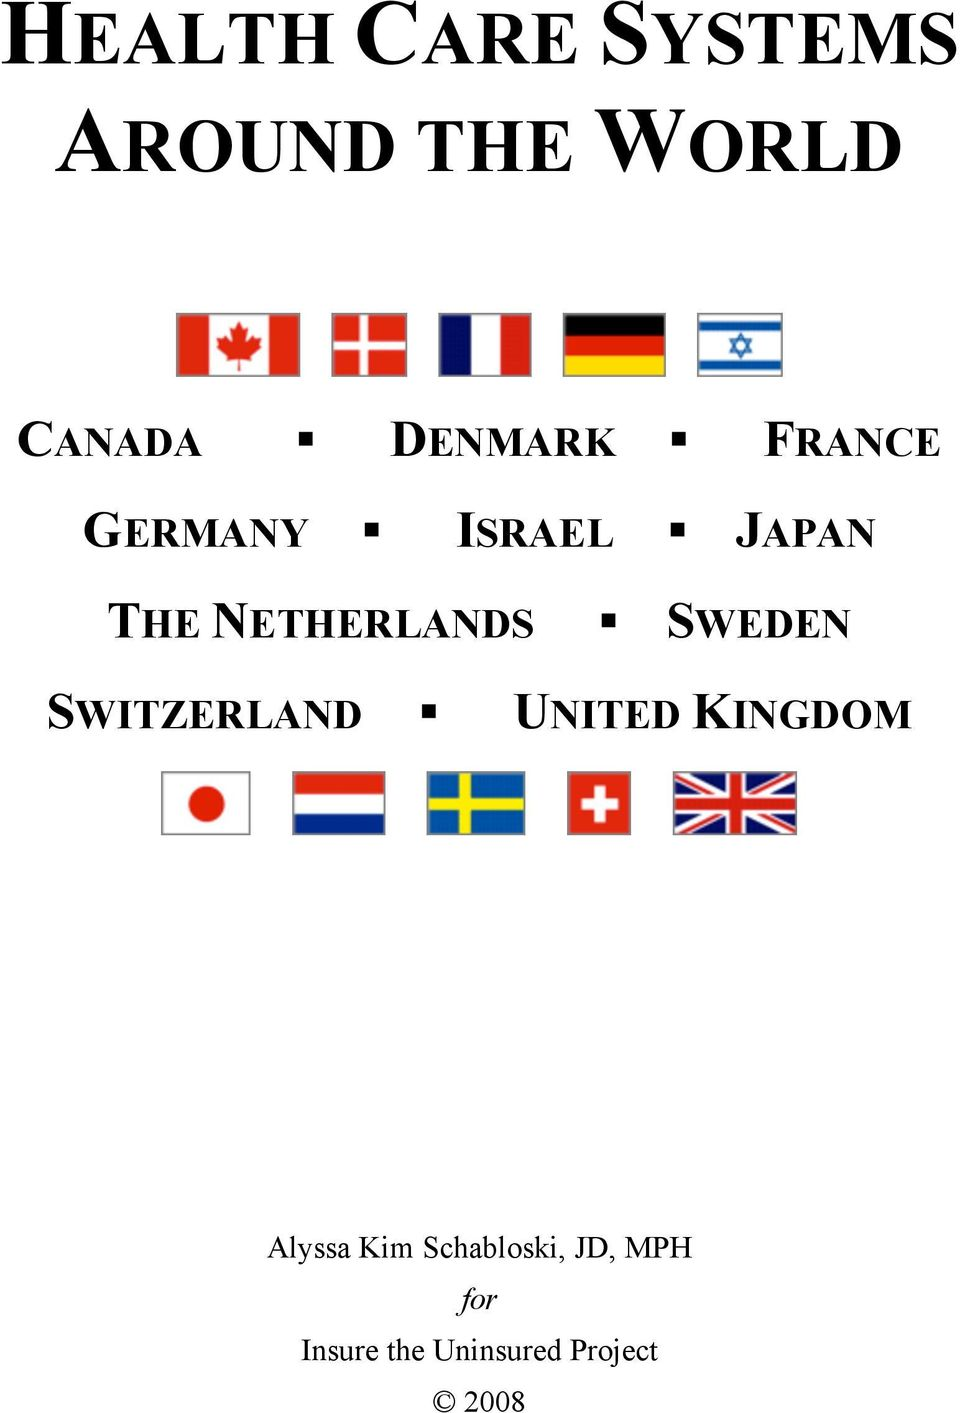 NETHERLANDS SWEDEN SWITZERLAND UNITED KINGDOM